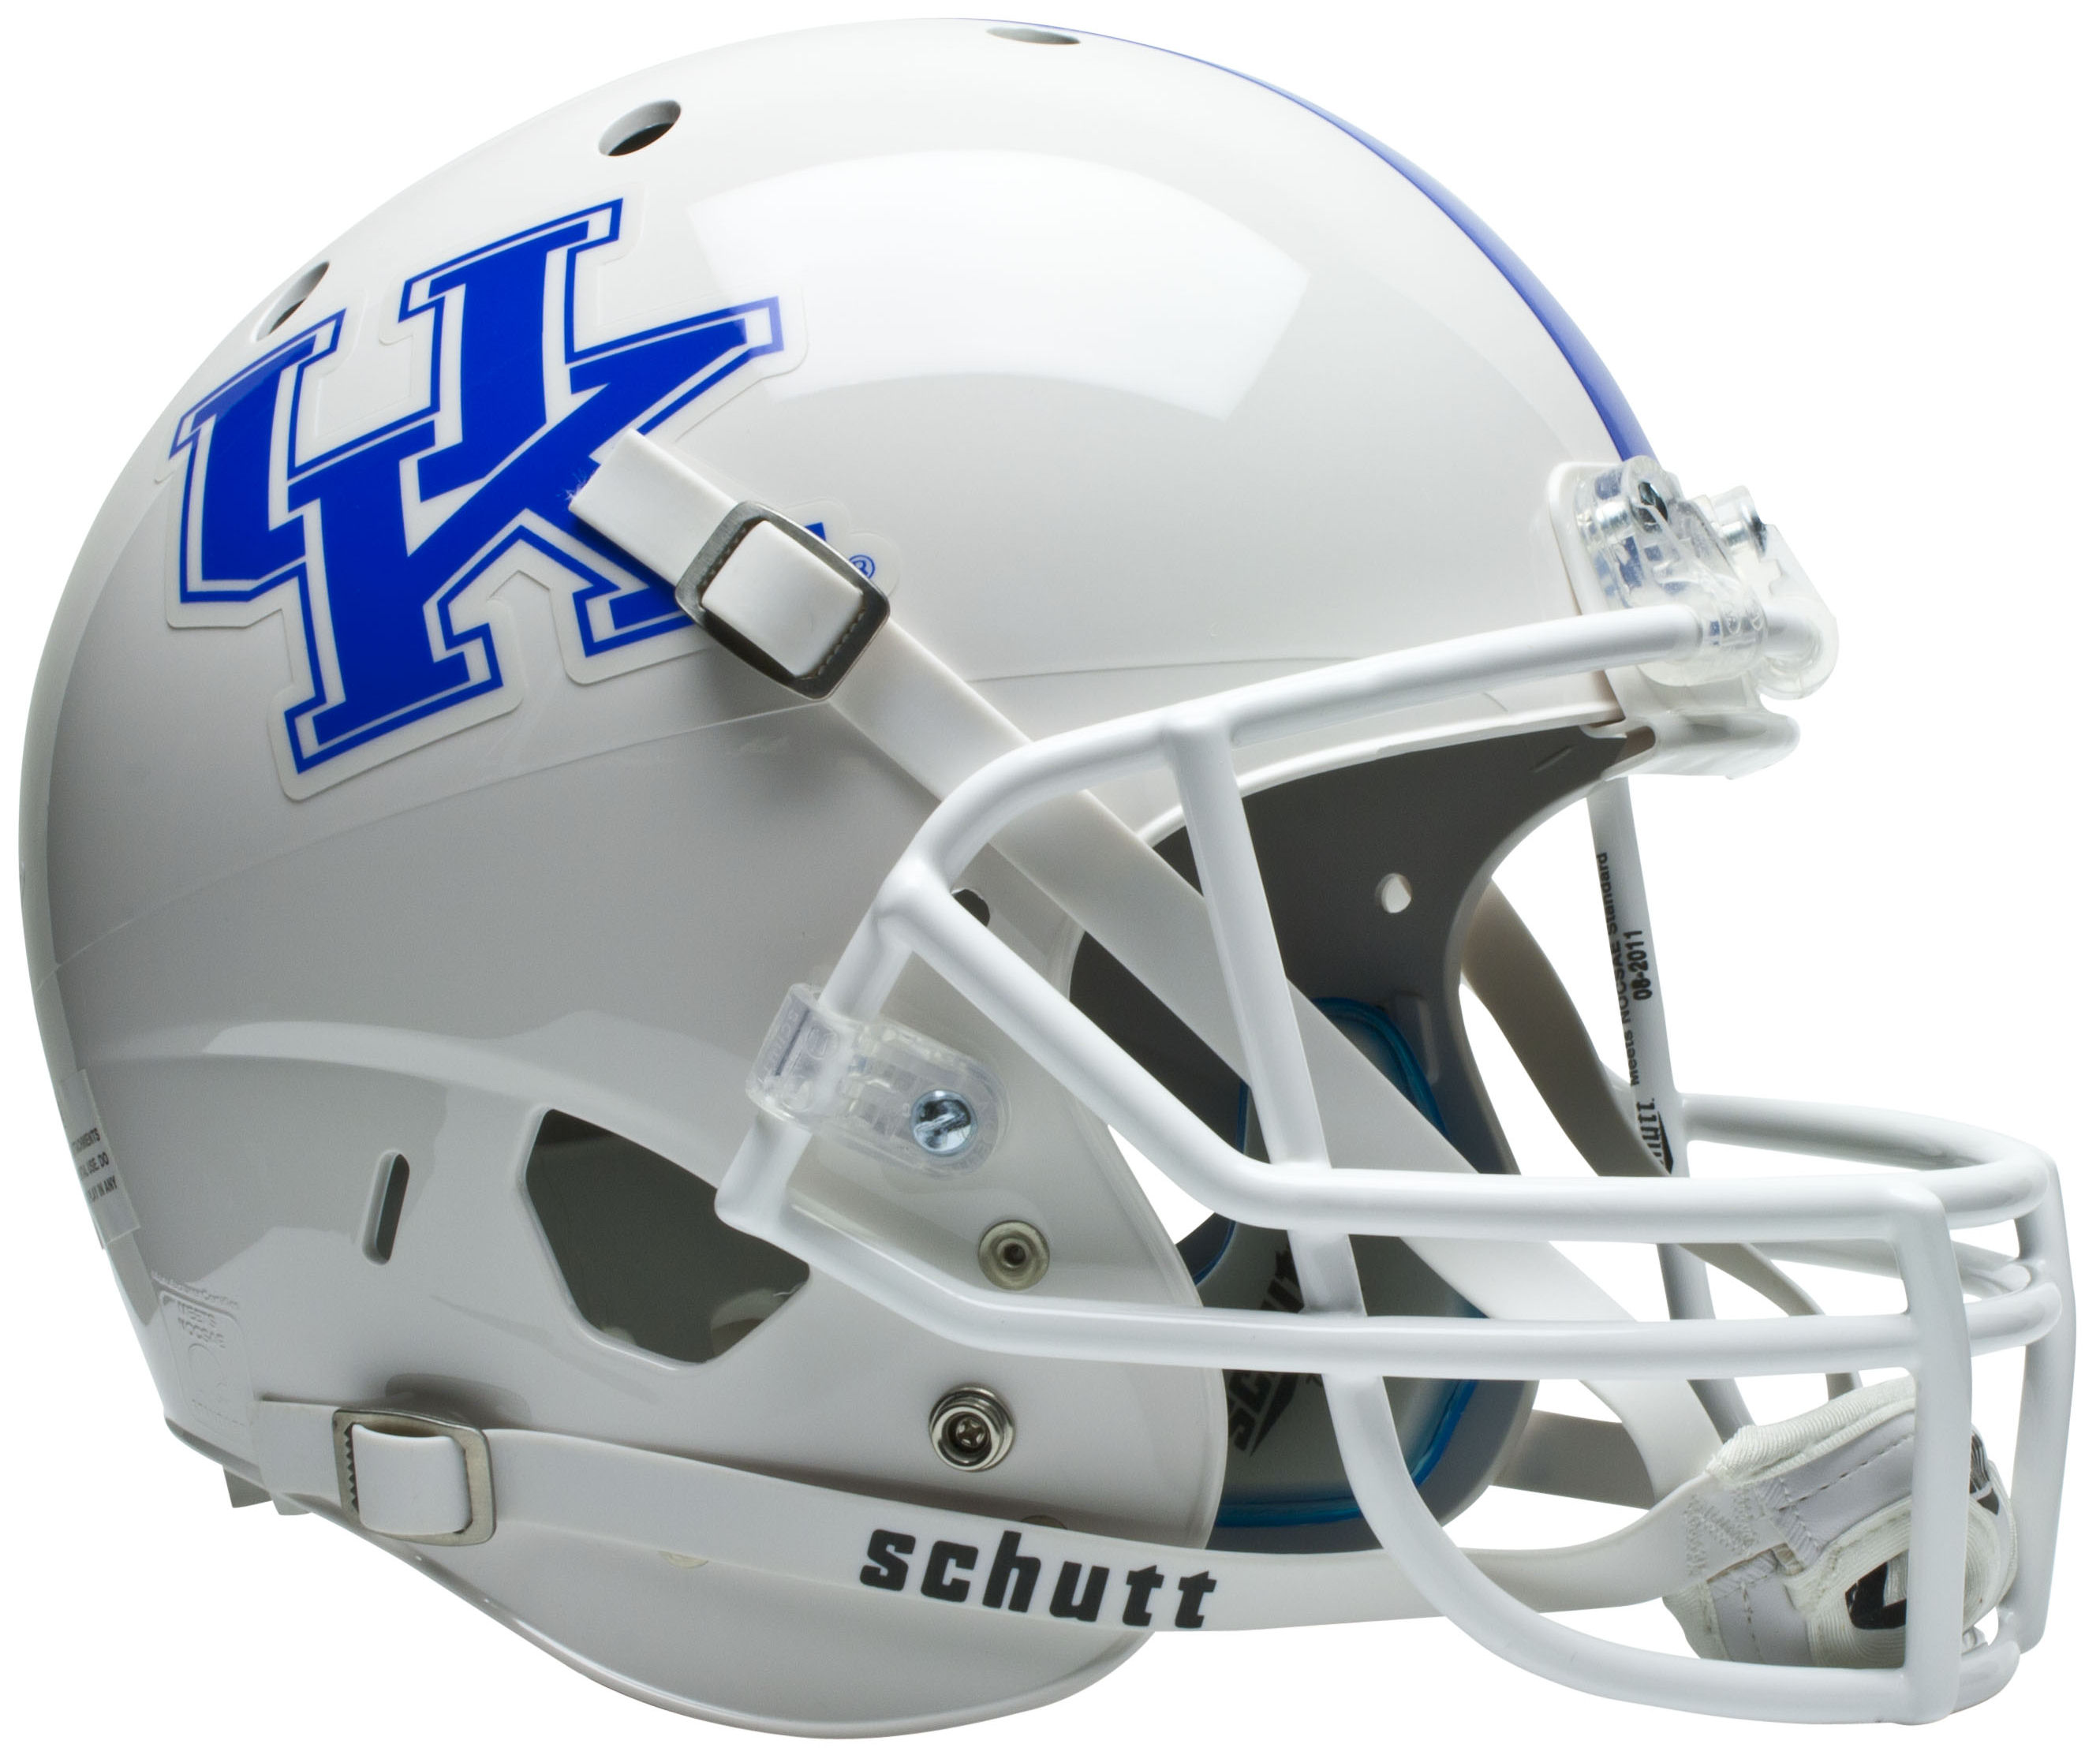 Kentucky Wildcats Full XP Replica Football Helmet Schutt <B>White</B>